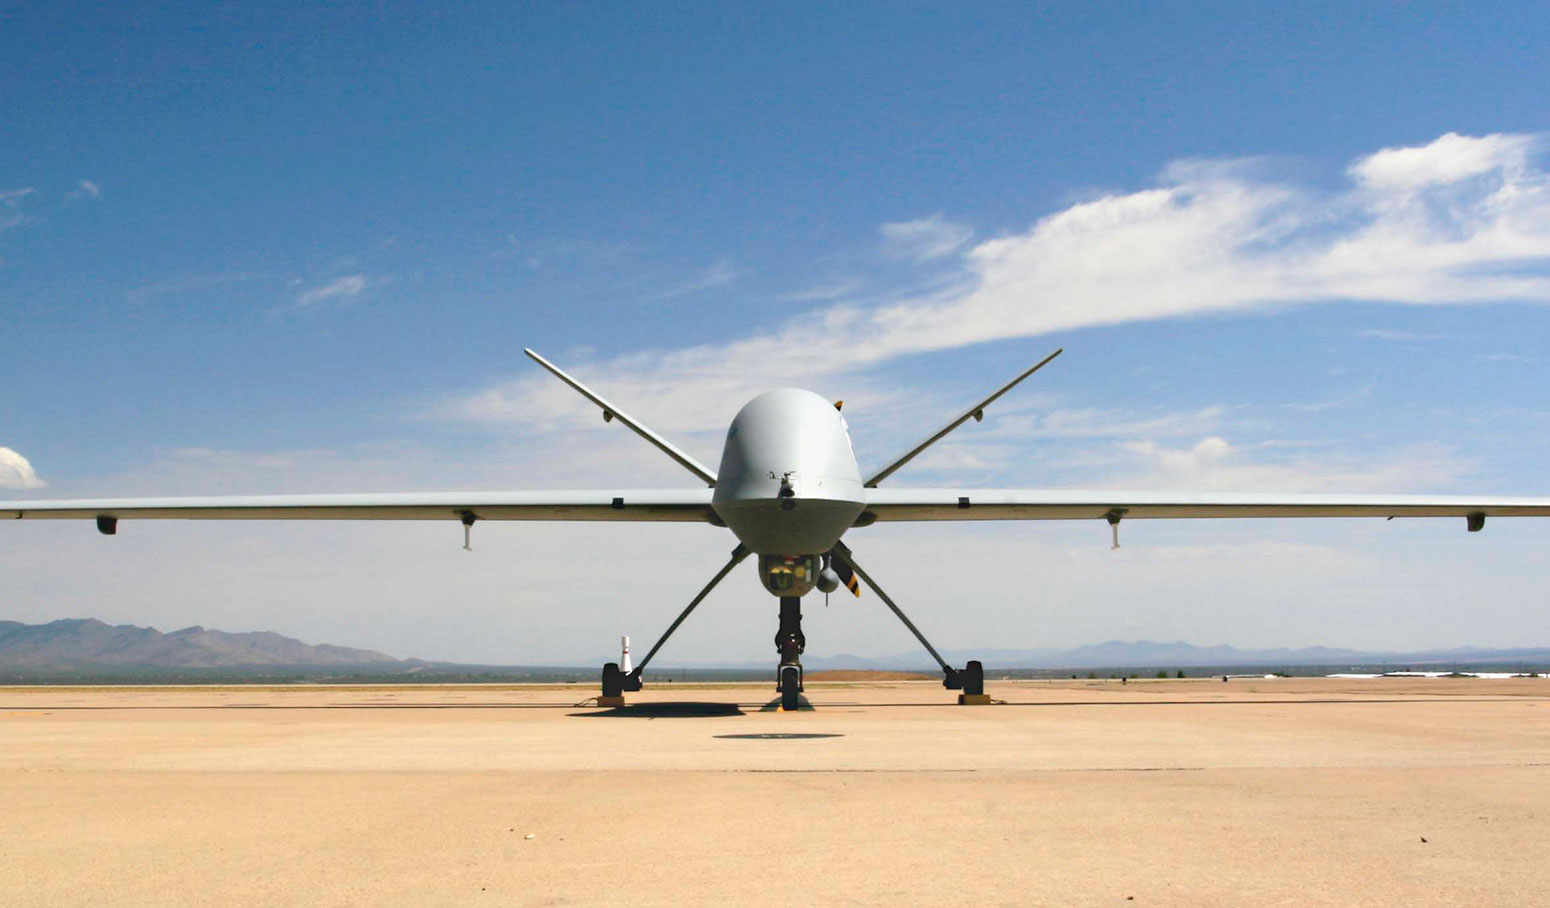 The Historical Future of Unmanned Aircraft Systems (UAS)